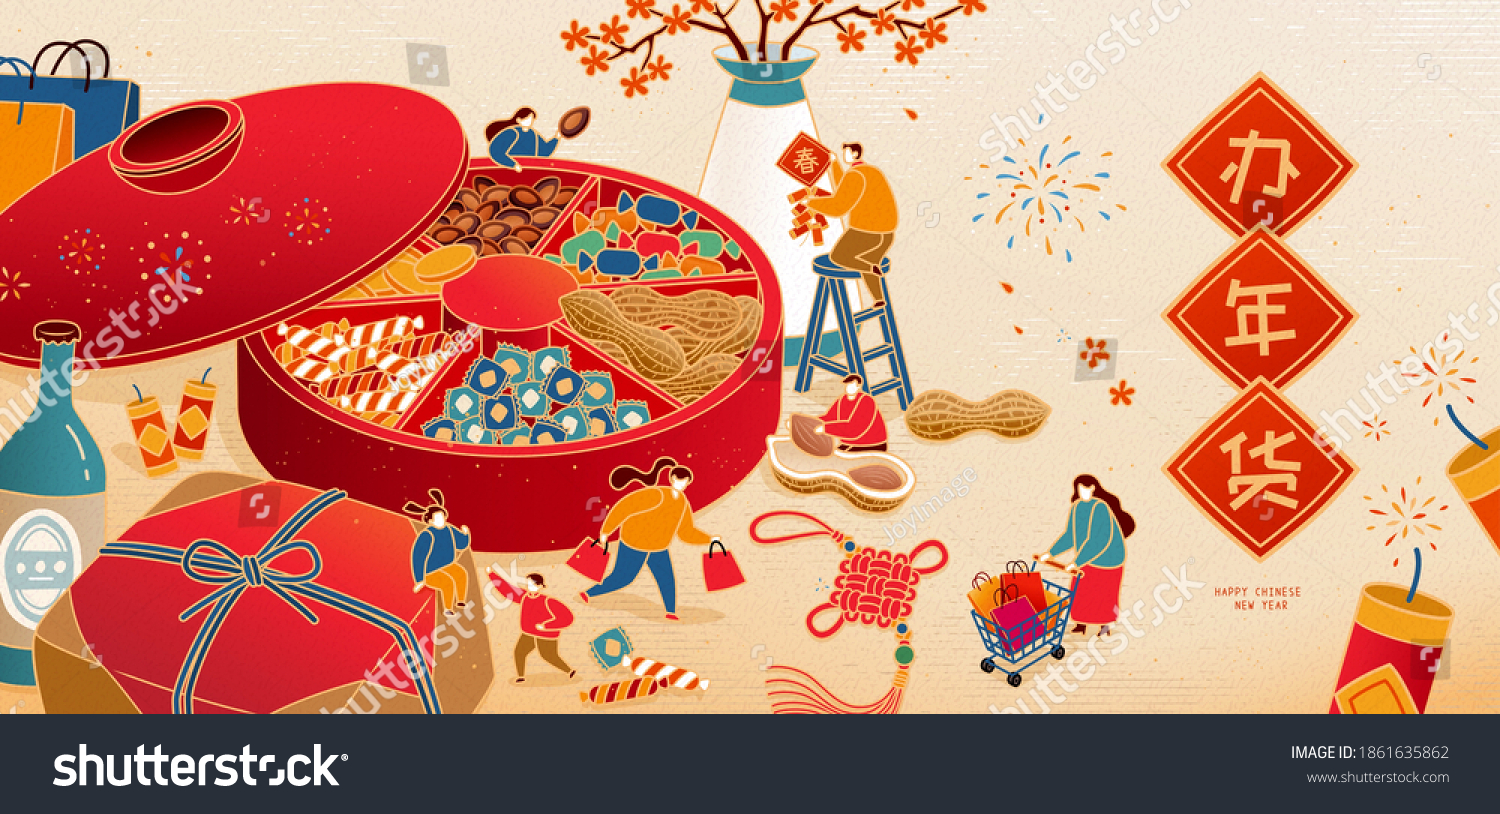 Banner illustration of miniature Asian people purchasing food and goods for Spring Festival, Translation: Chinese new year shopping #1861635862